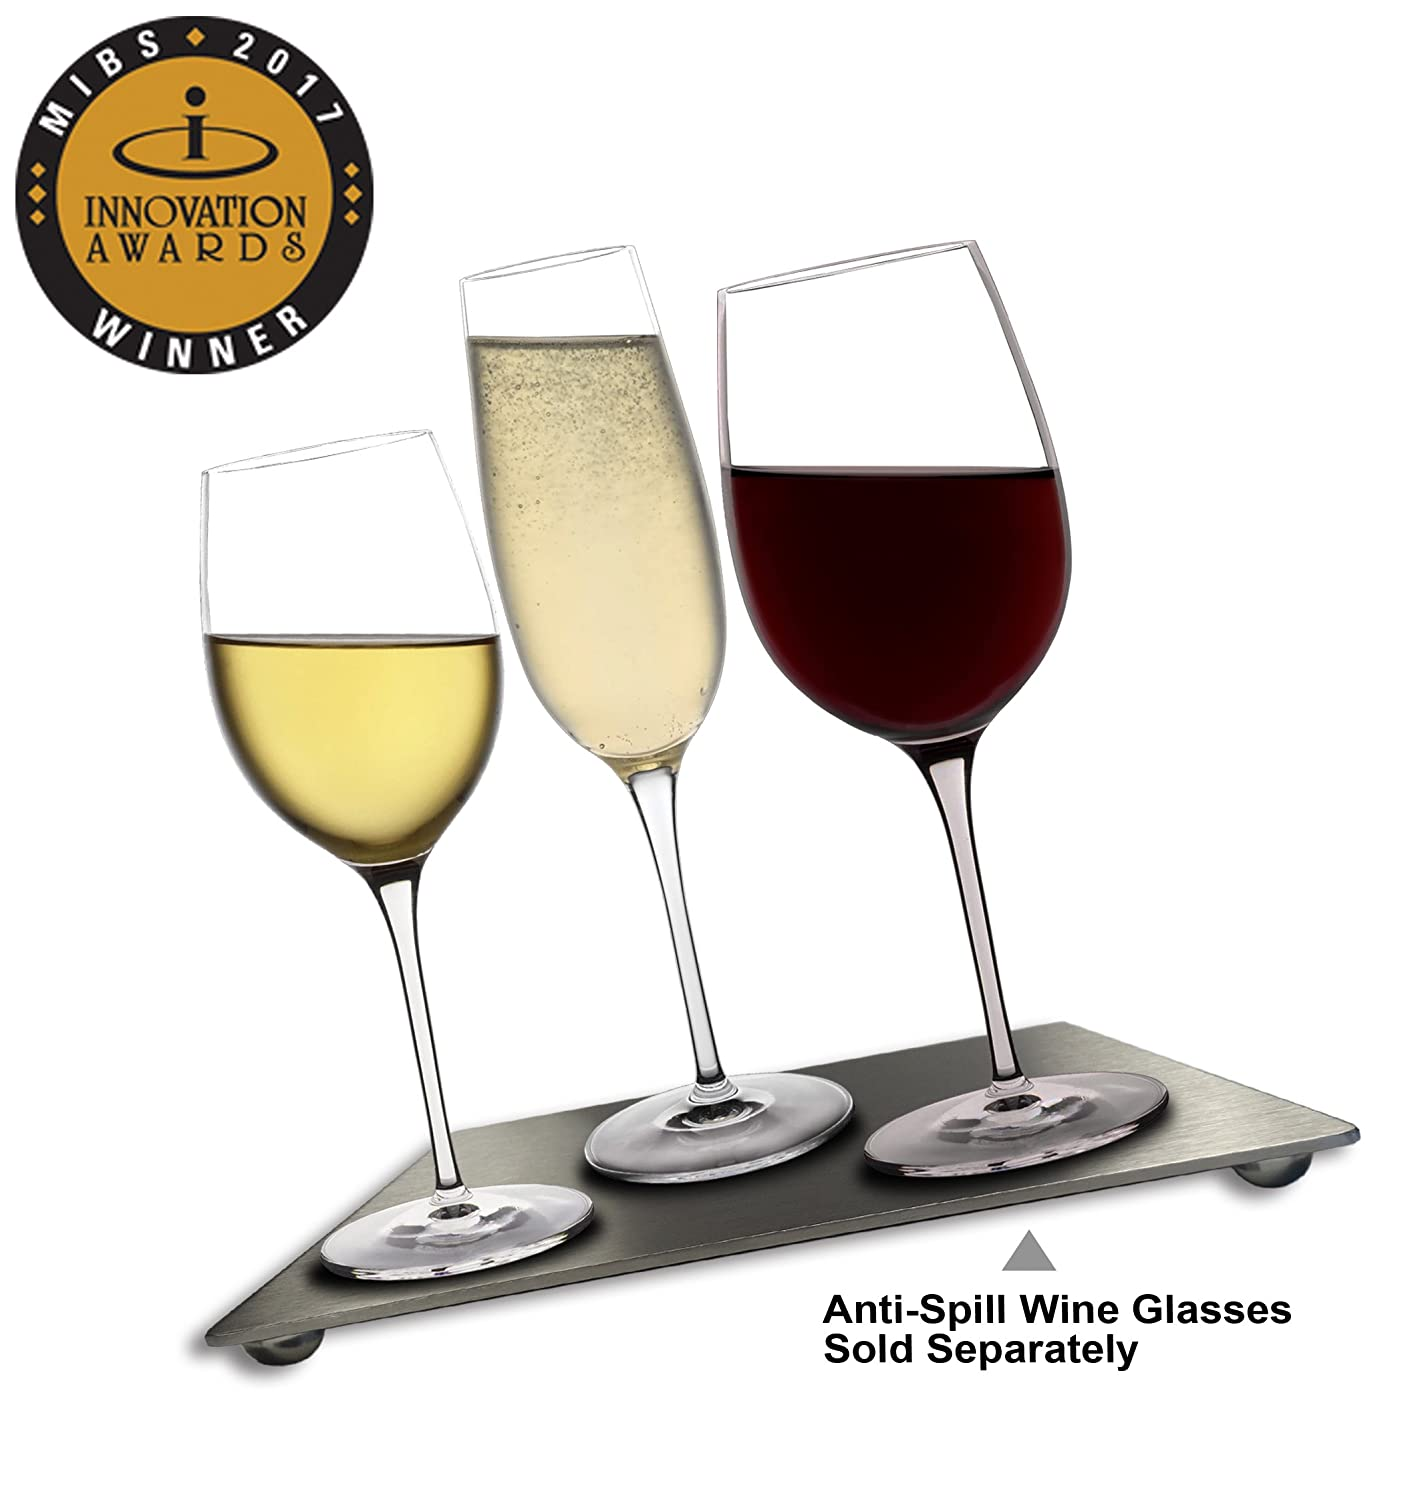 Magnetic Stainless Steel Board for Anti-Spill Wine Glasses